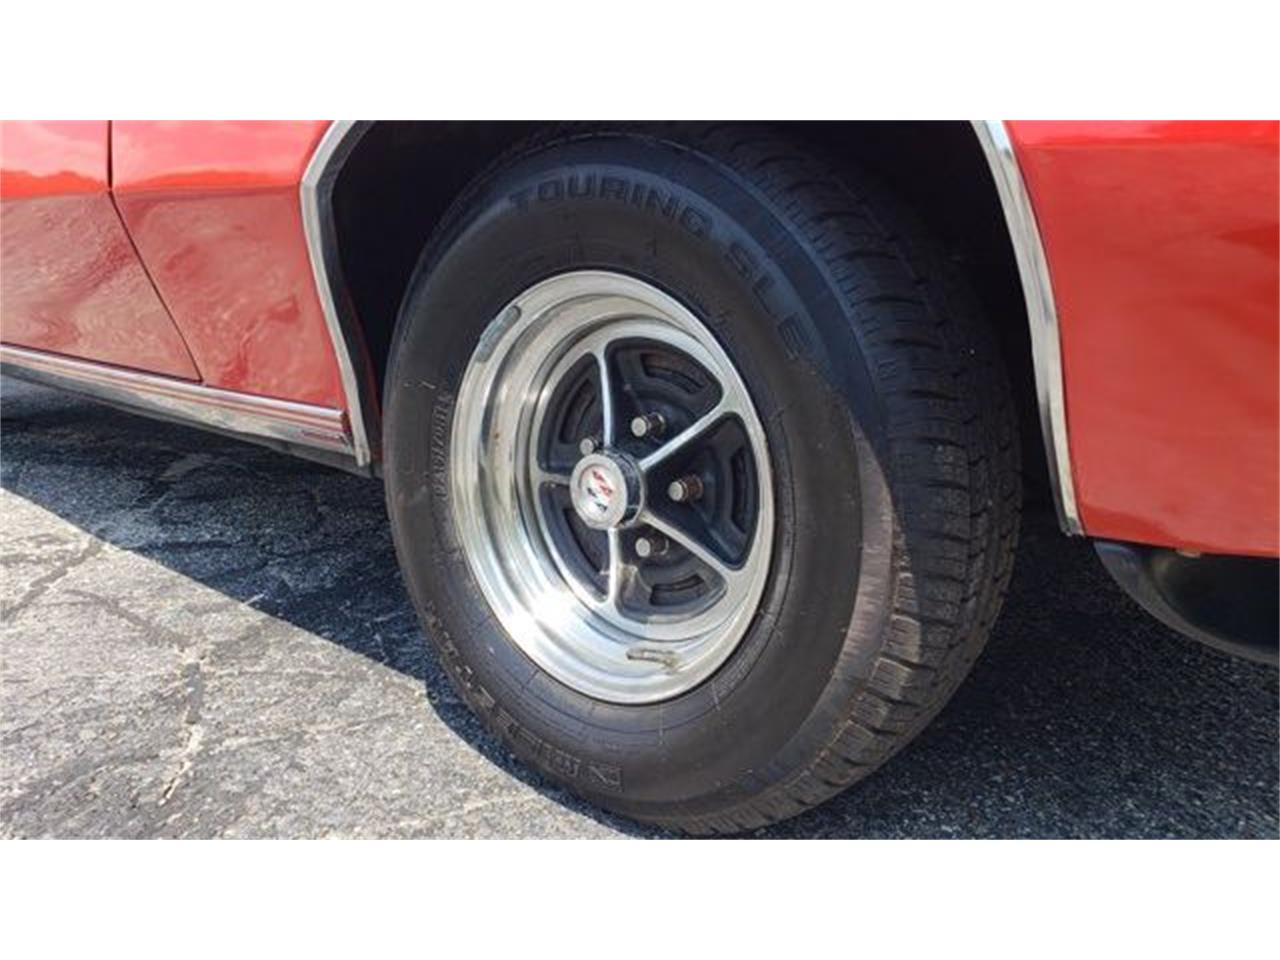 1971 Buick GSX for sale in Hope Mills, NC – photo 18